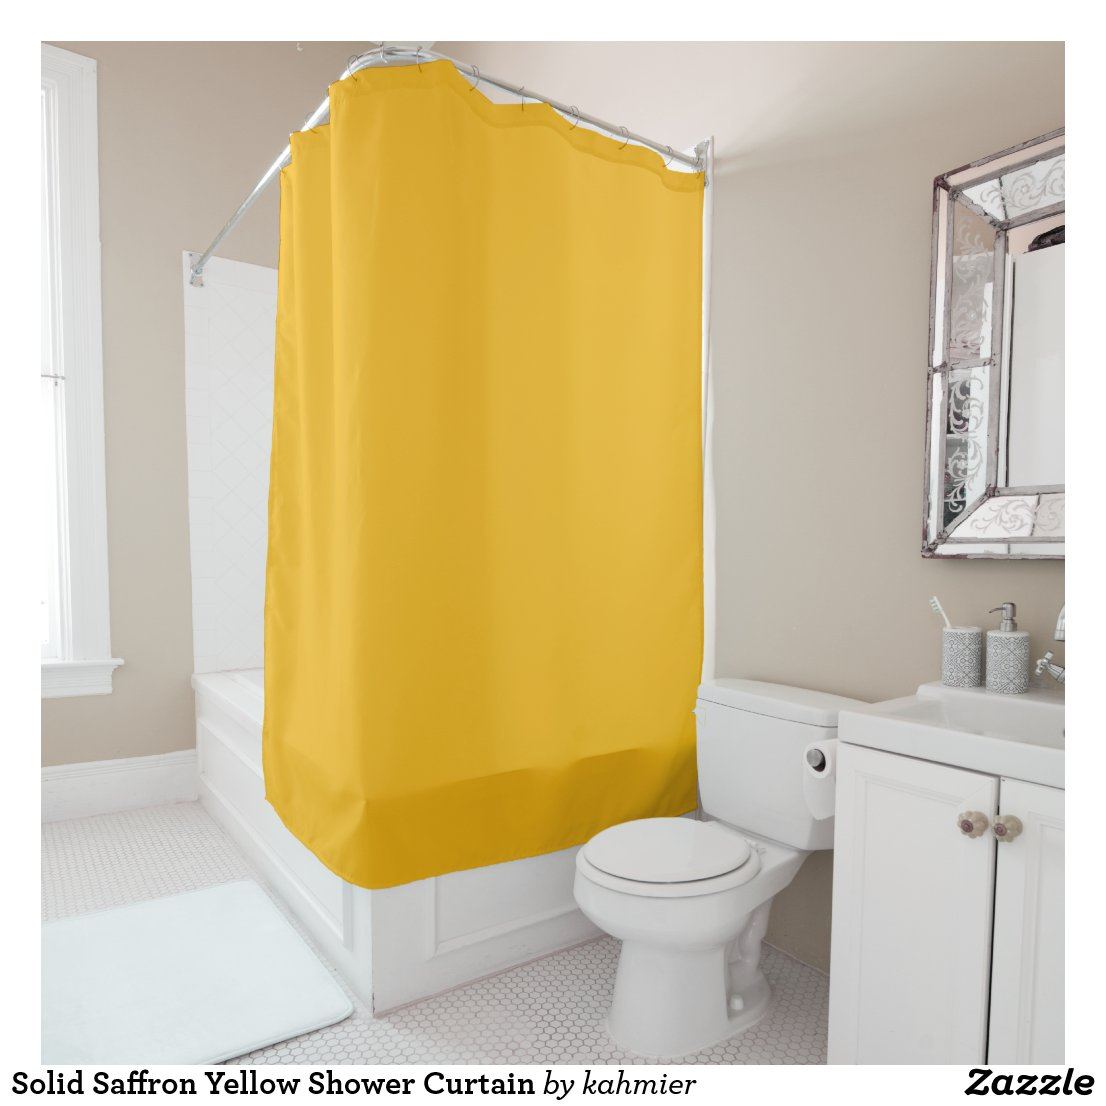 Solid Saffron Yellow Shower Curtain